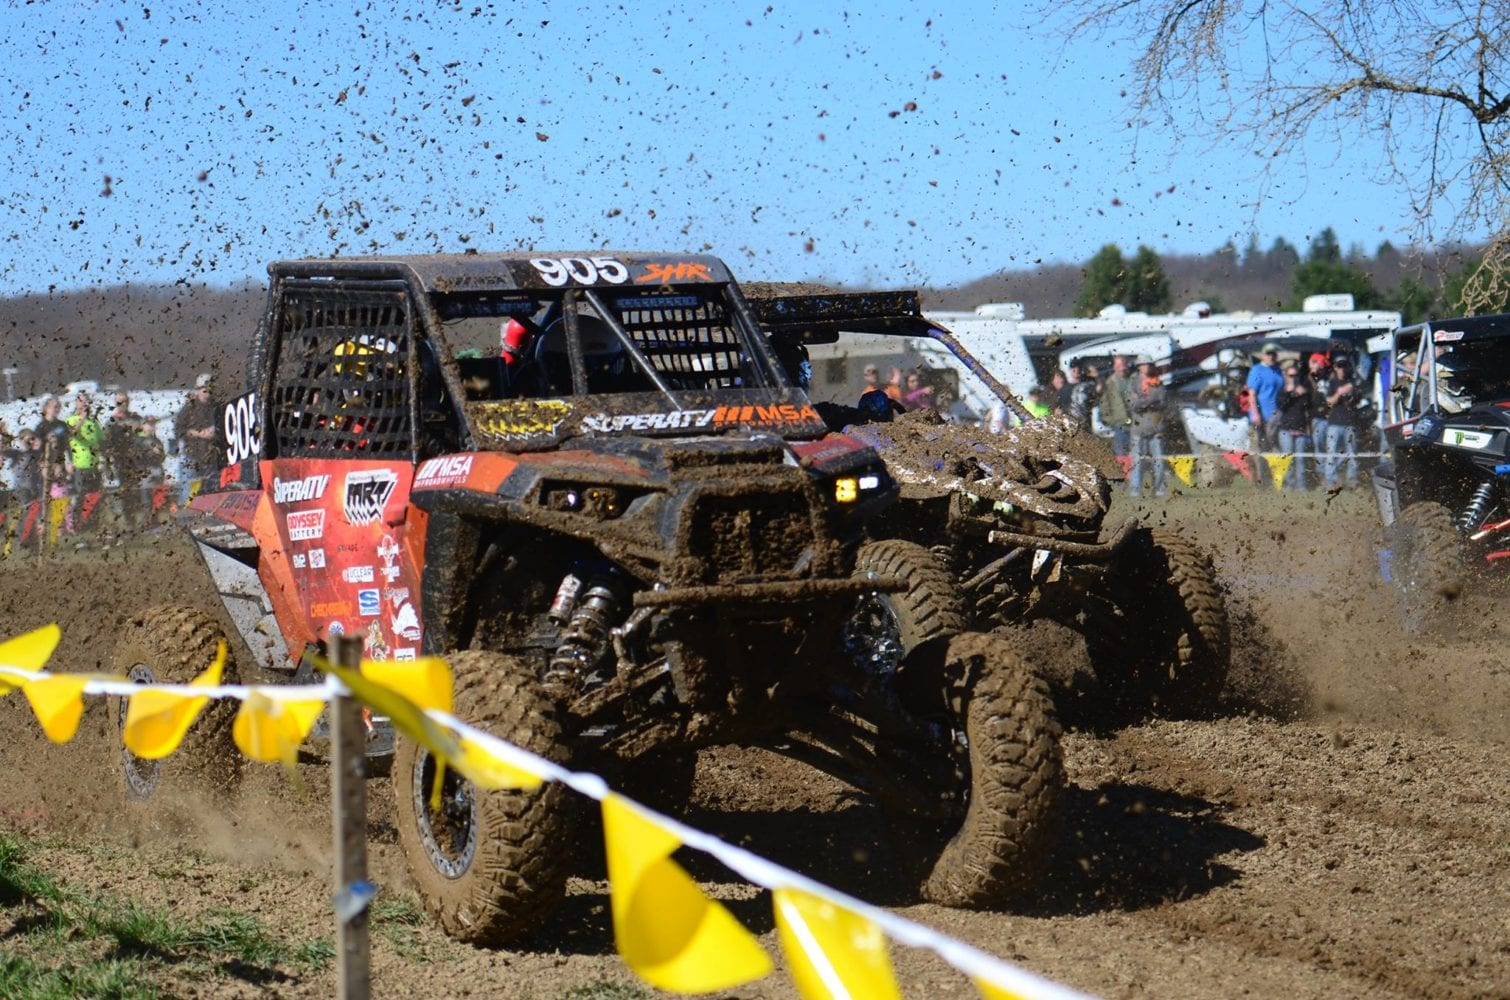 sean-haluch-racing-mrt-motoracetire-utv-race-tires 026